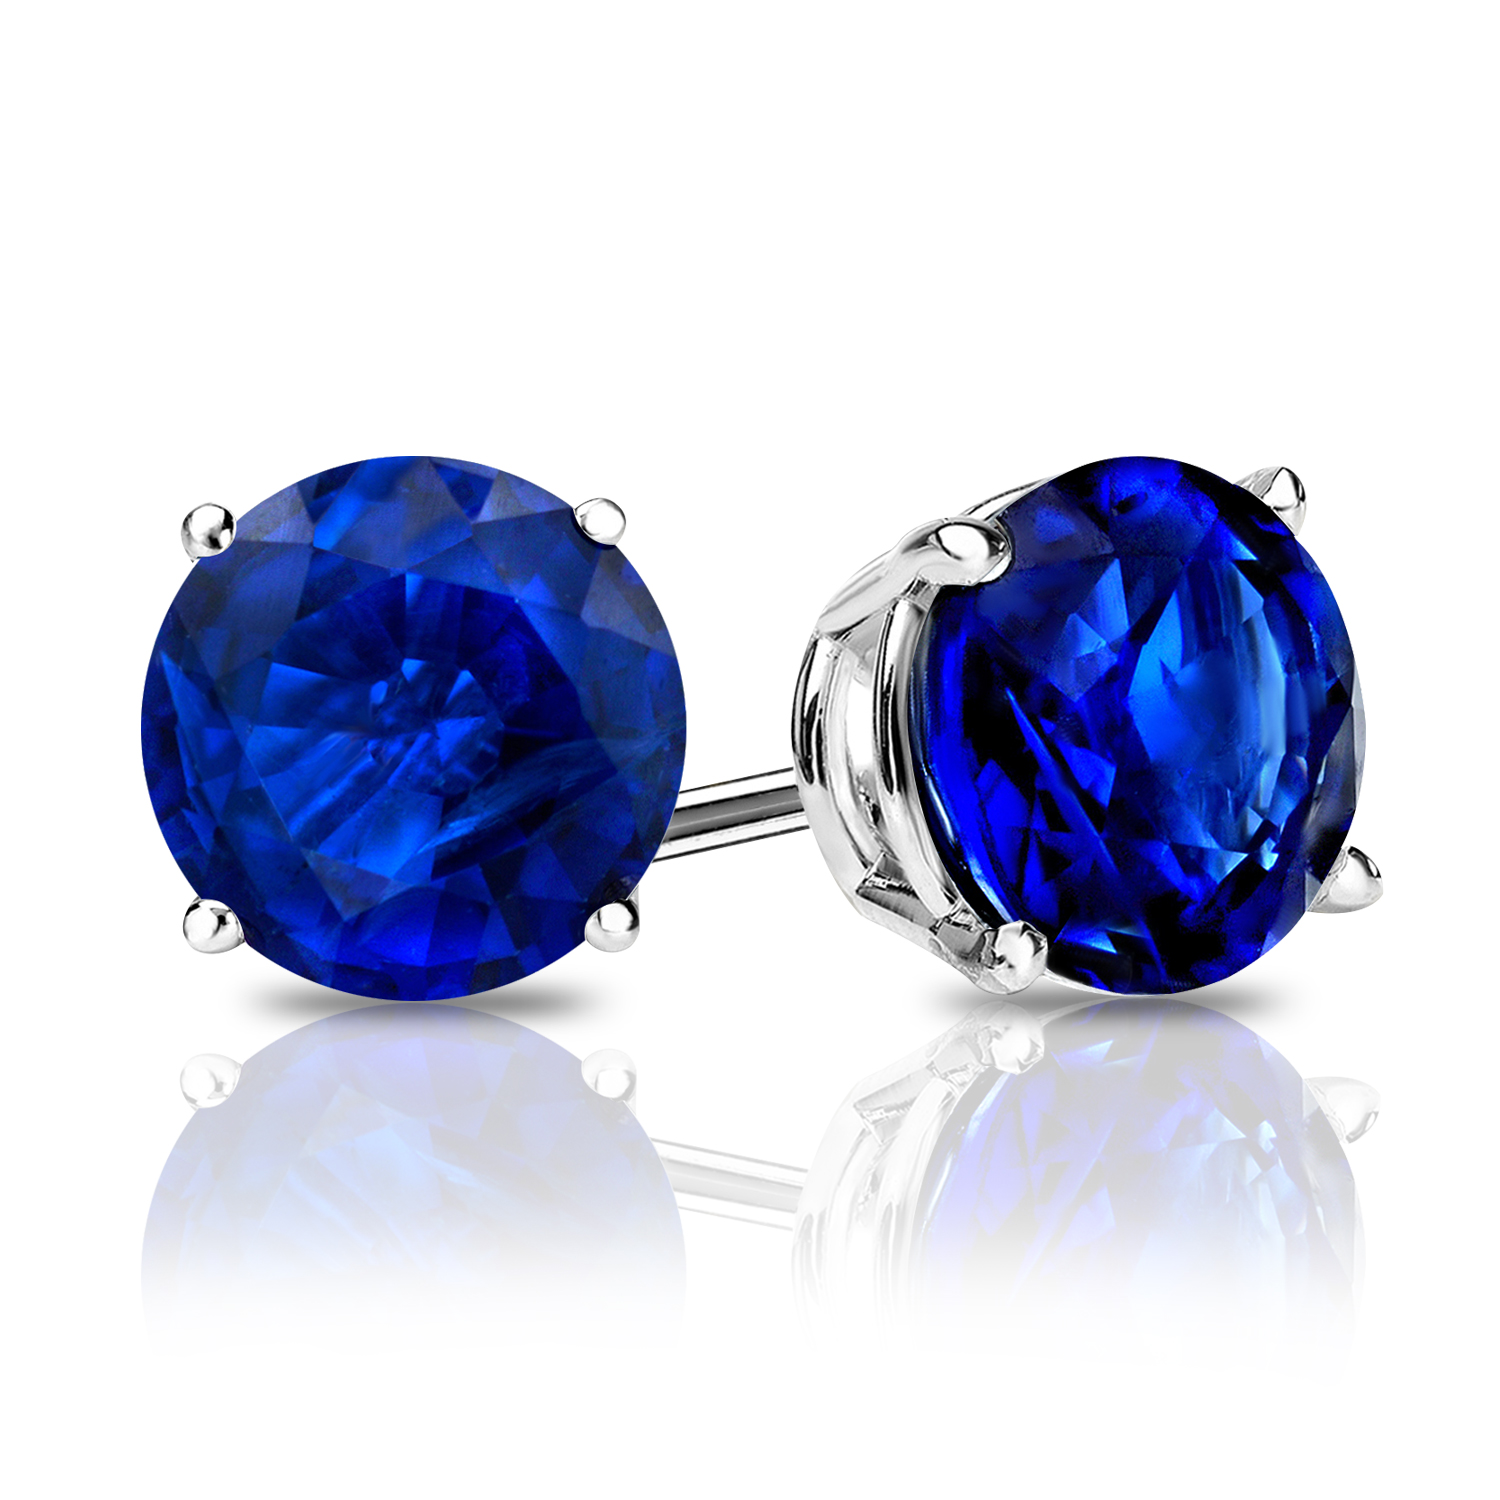 Certified 0.33 cttw Round Blue Sapphire Gemstone Stud Earrings in 14k White Gold 4-Prong Basket (Blue, AAA)